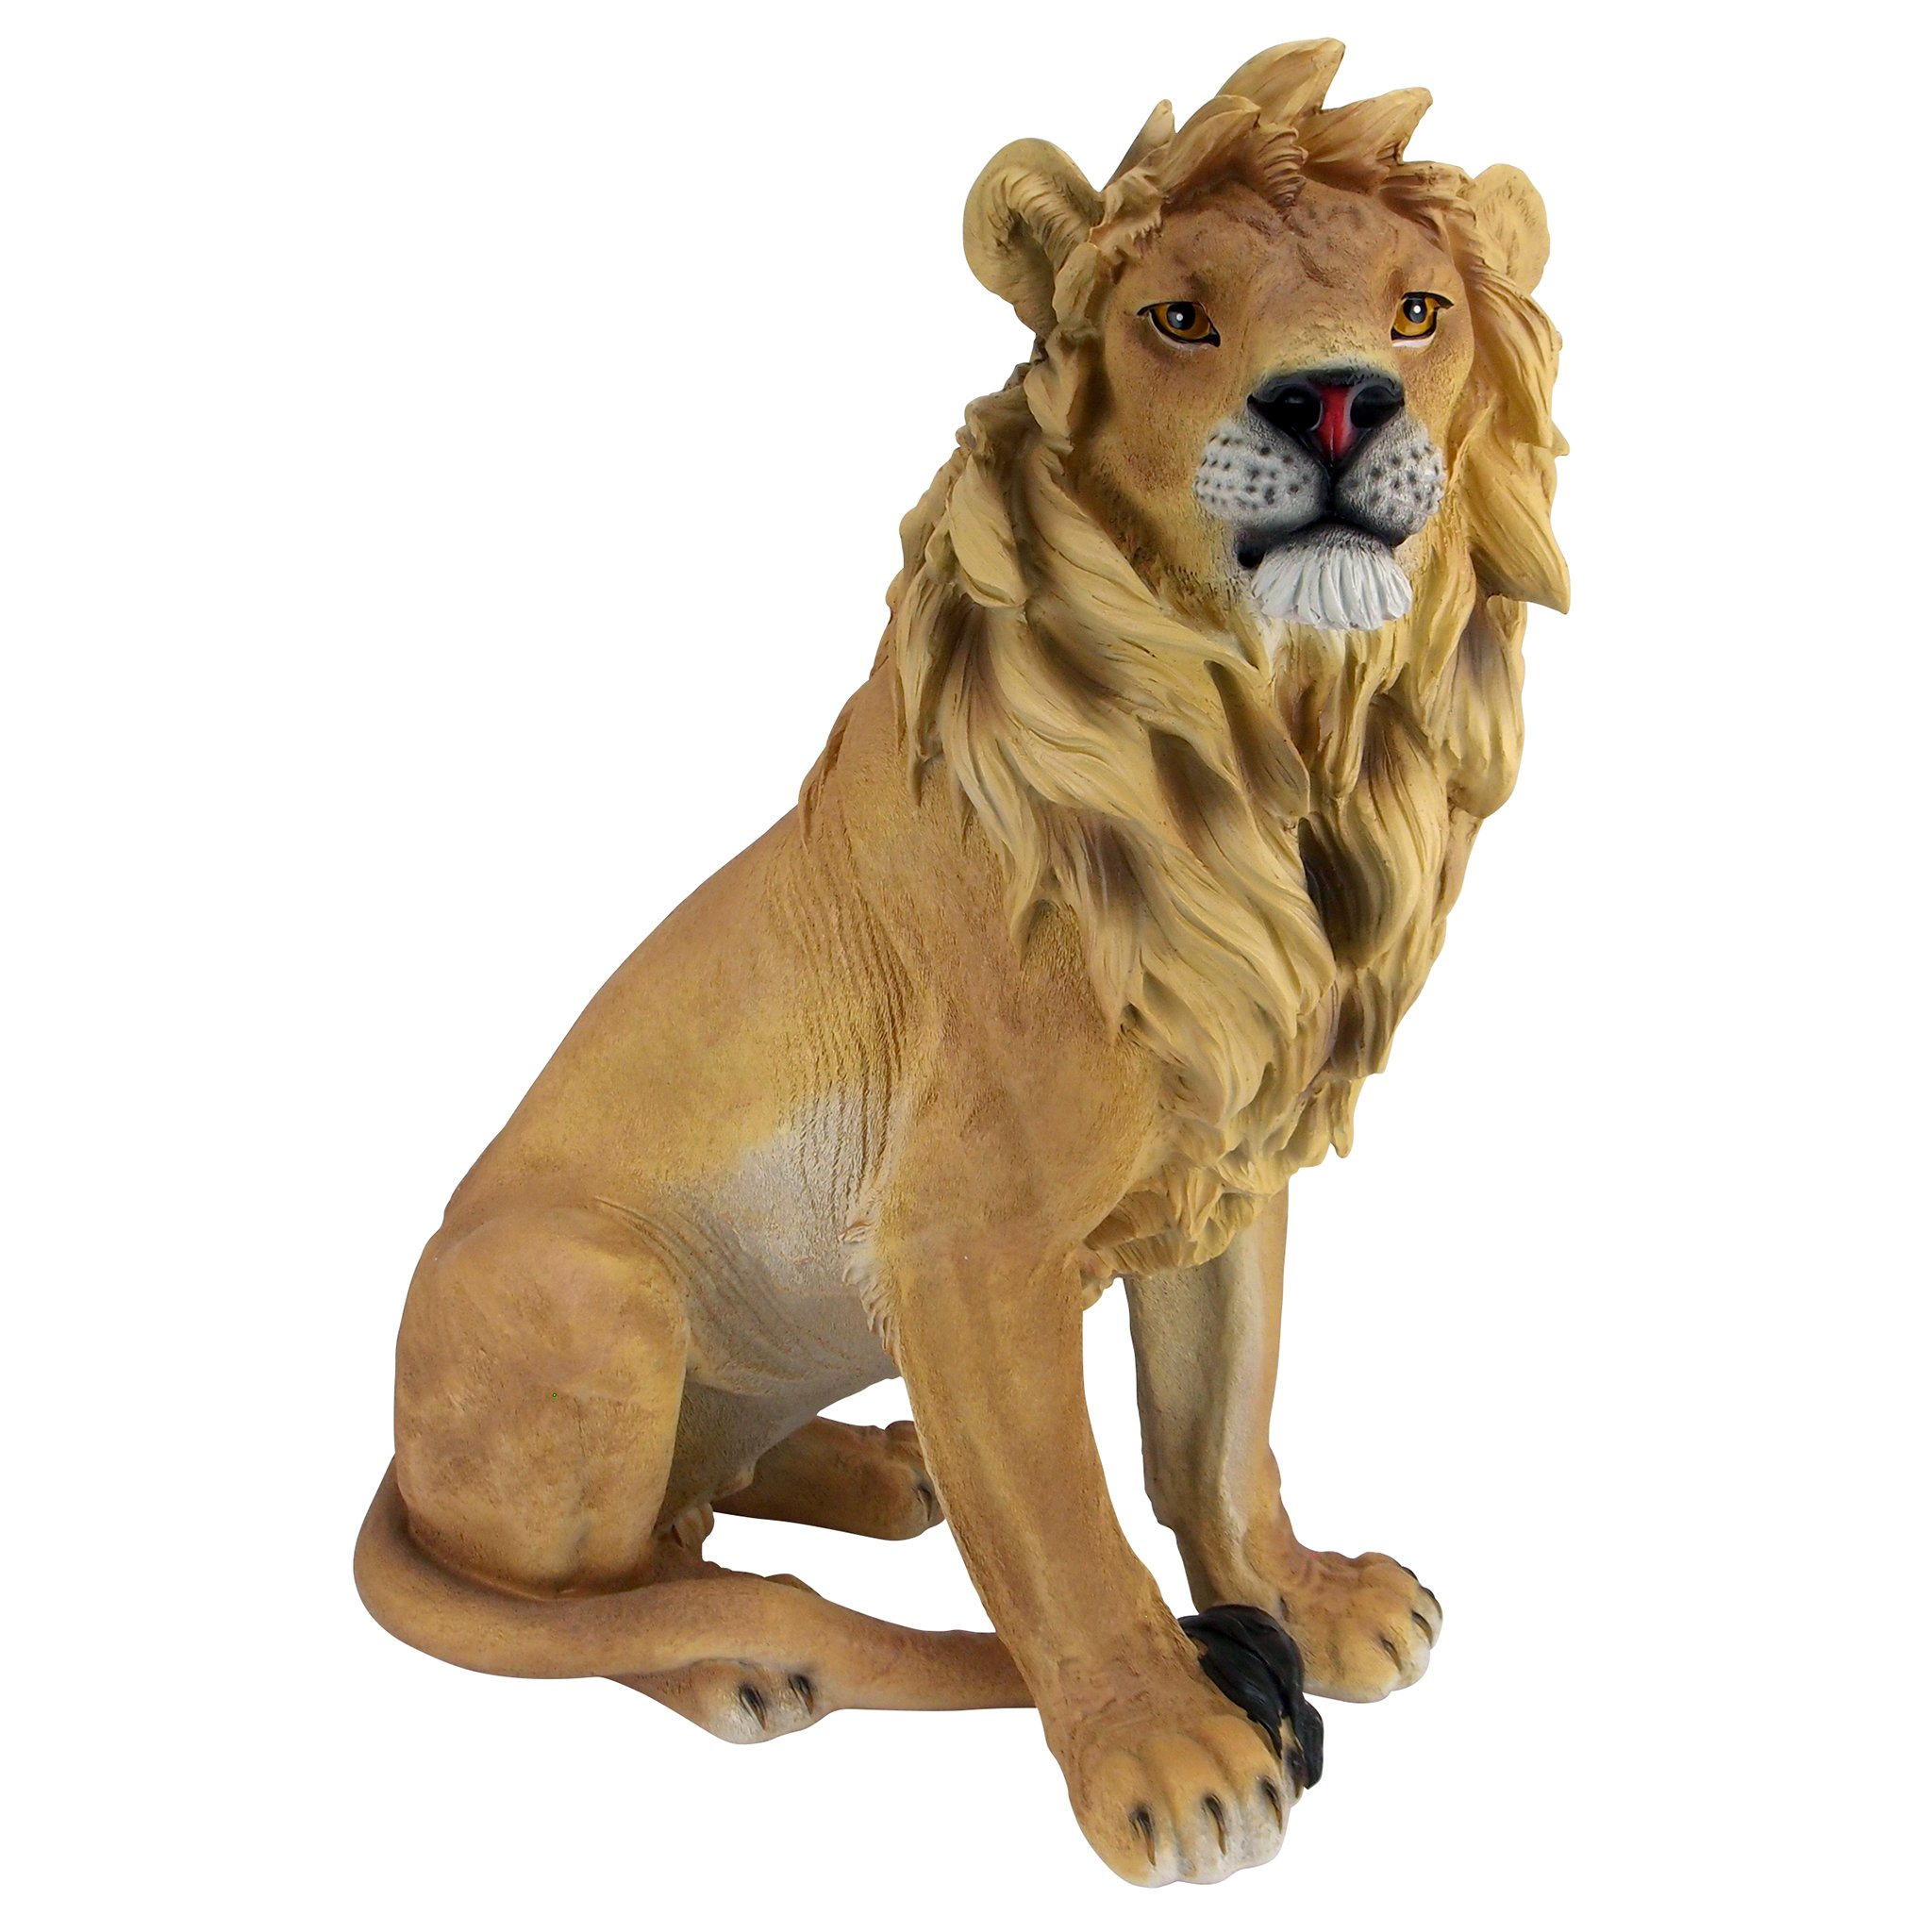 Design Toscano King of Beasts Lion Sculpture